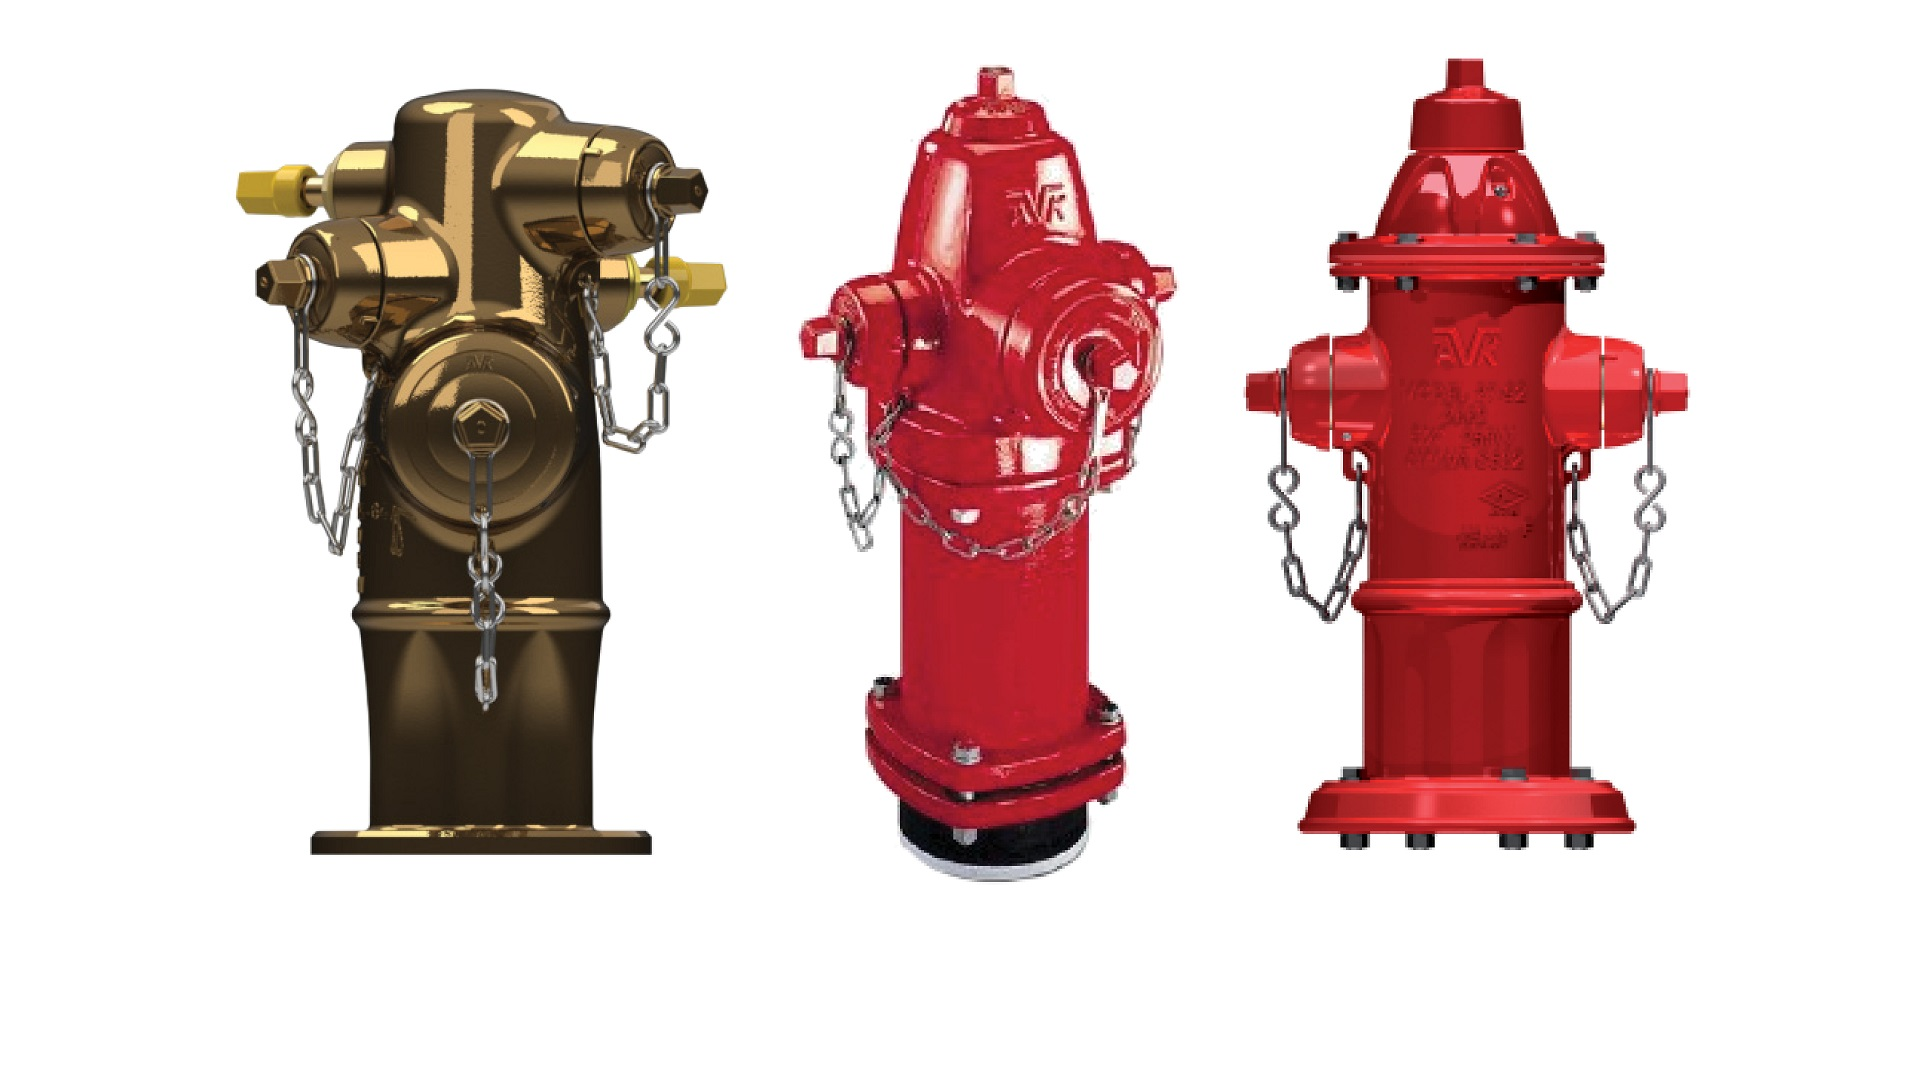 AVK Fire Protection Hydrants